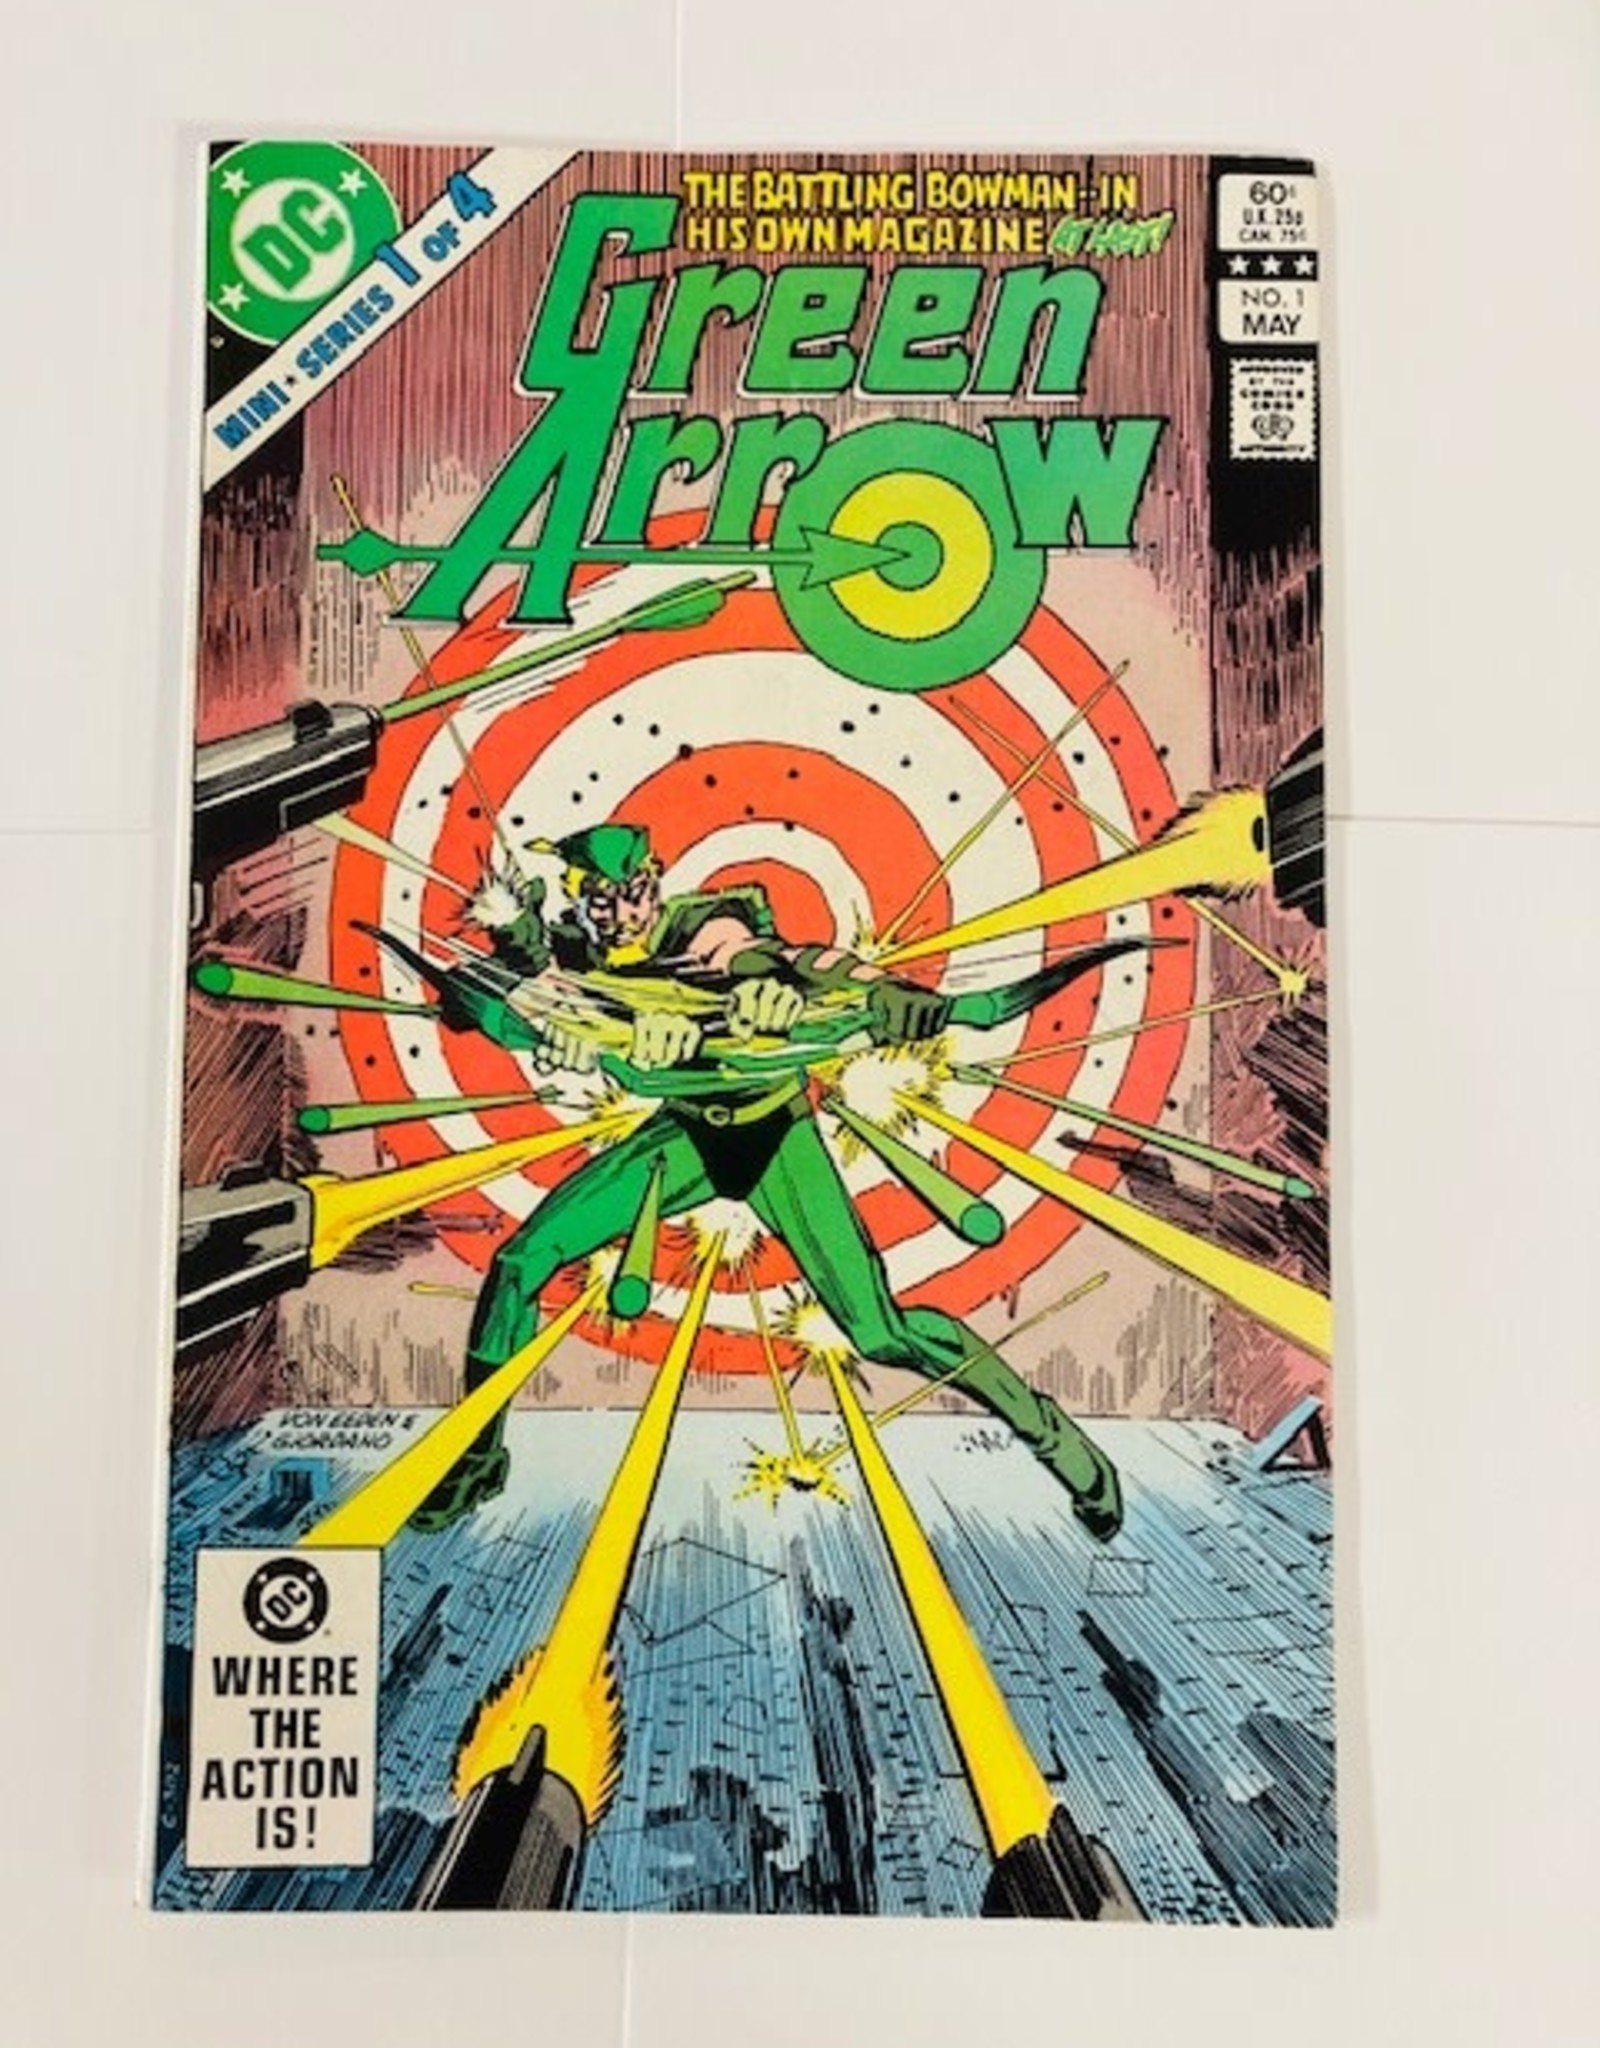 DC COMICS Green Arrow #1 (1983)